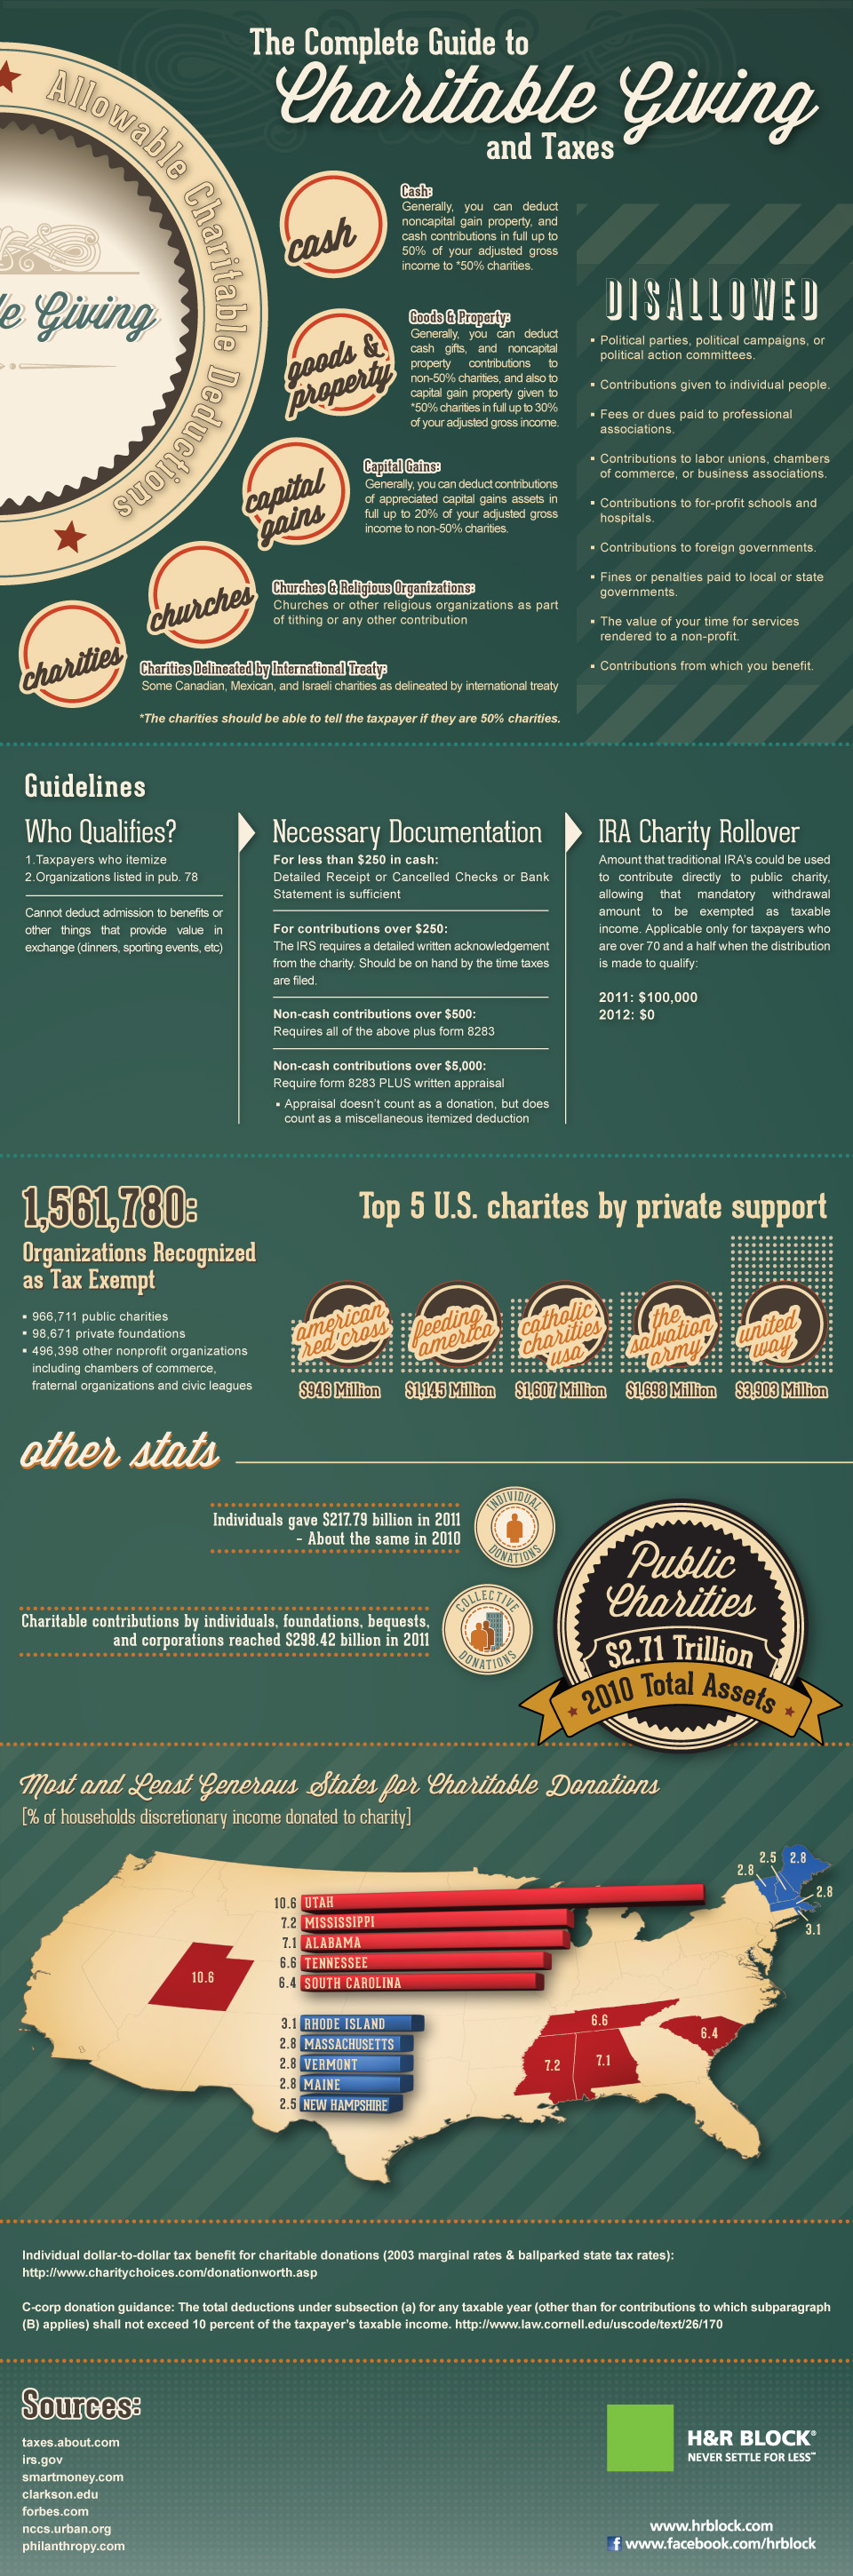 Bloggers will pay advertising taxes 20.07.2012 88